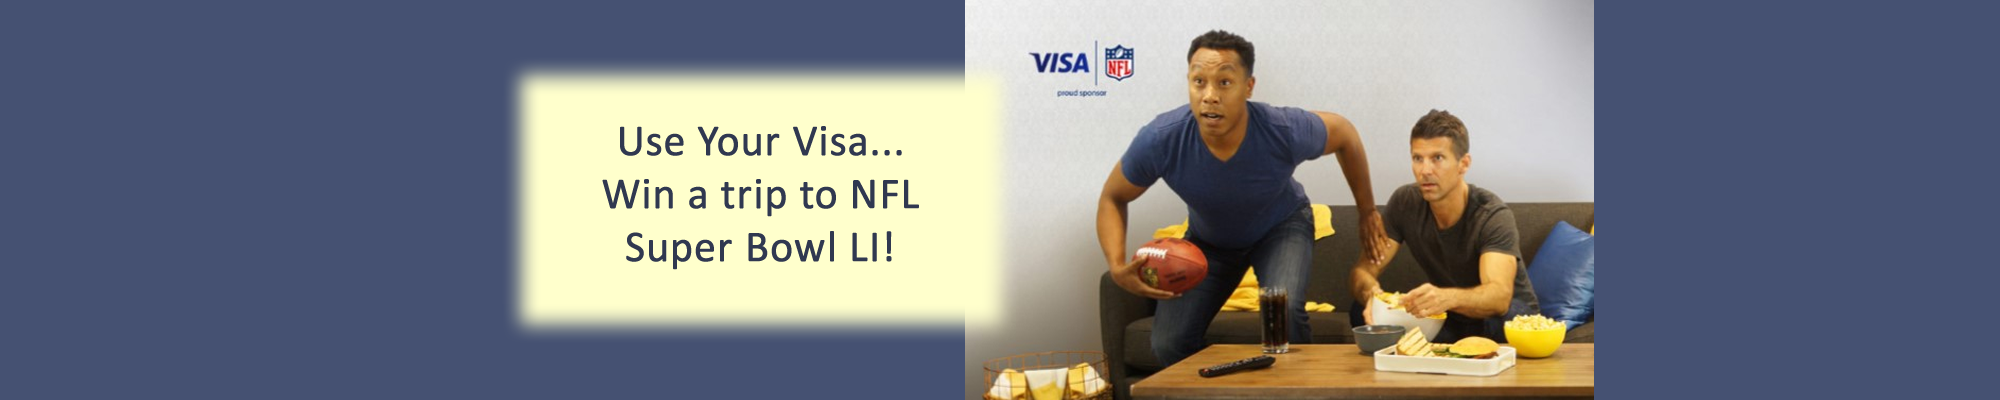 Visa Super Bowl contest